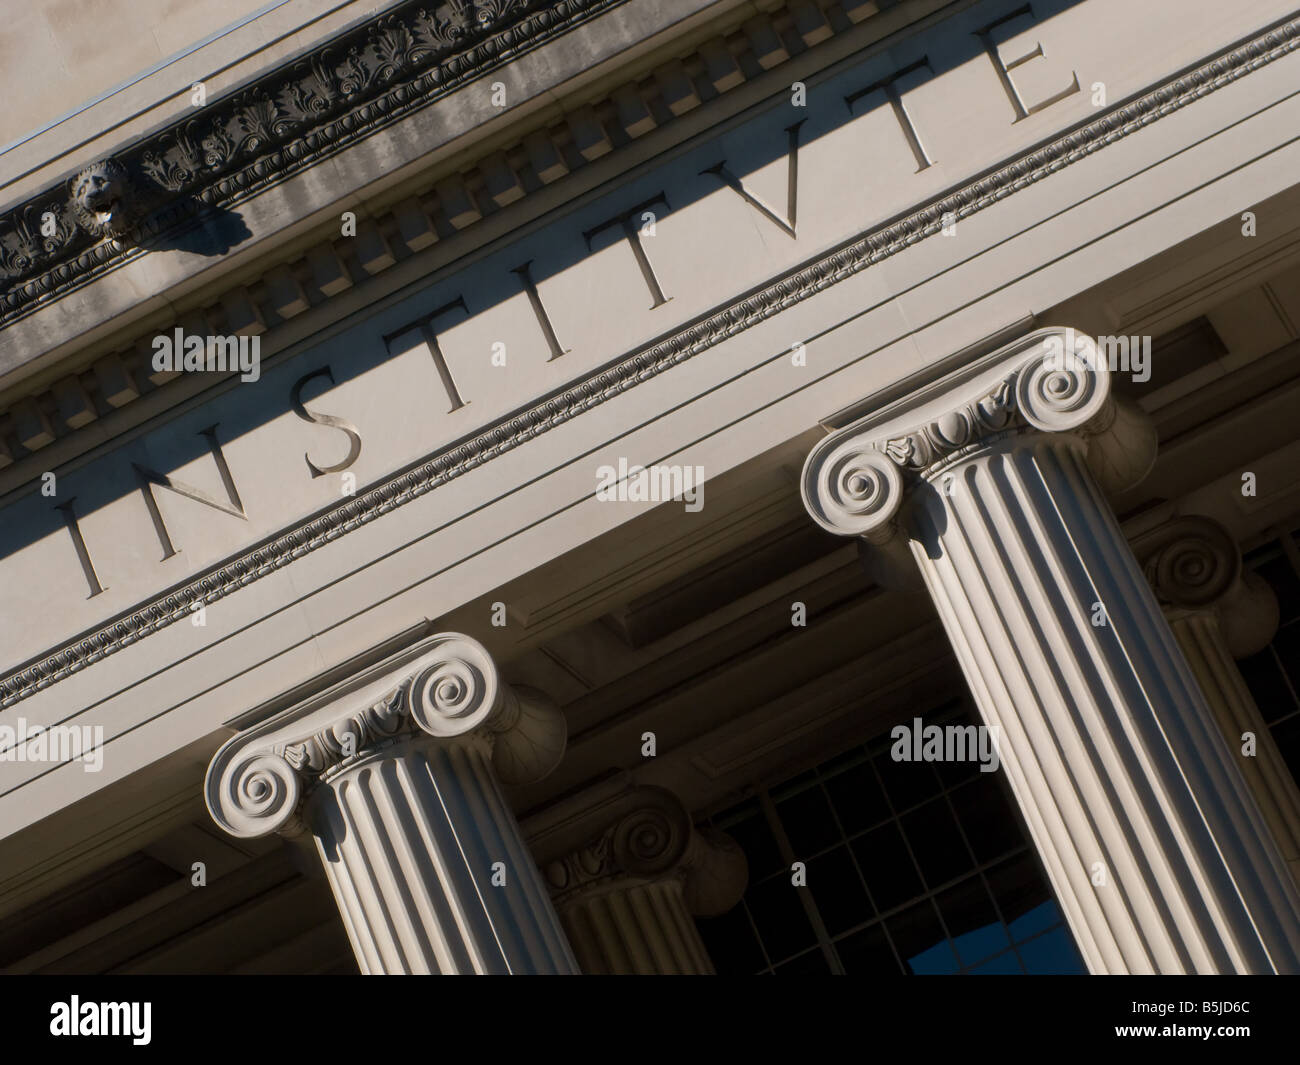 Detail shot of the tops of the columns on the Building 10 facade on the MIT campus in Cambridge MA as seen on 10 - Stock Image